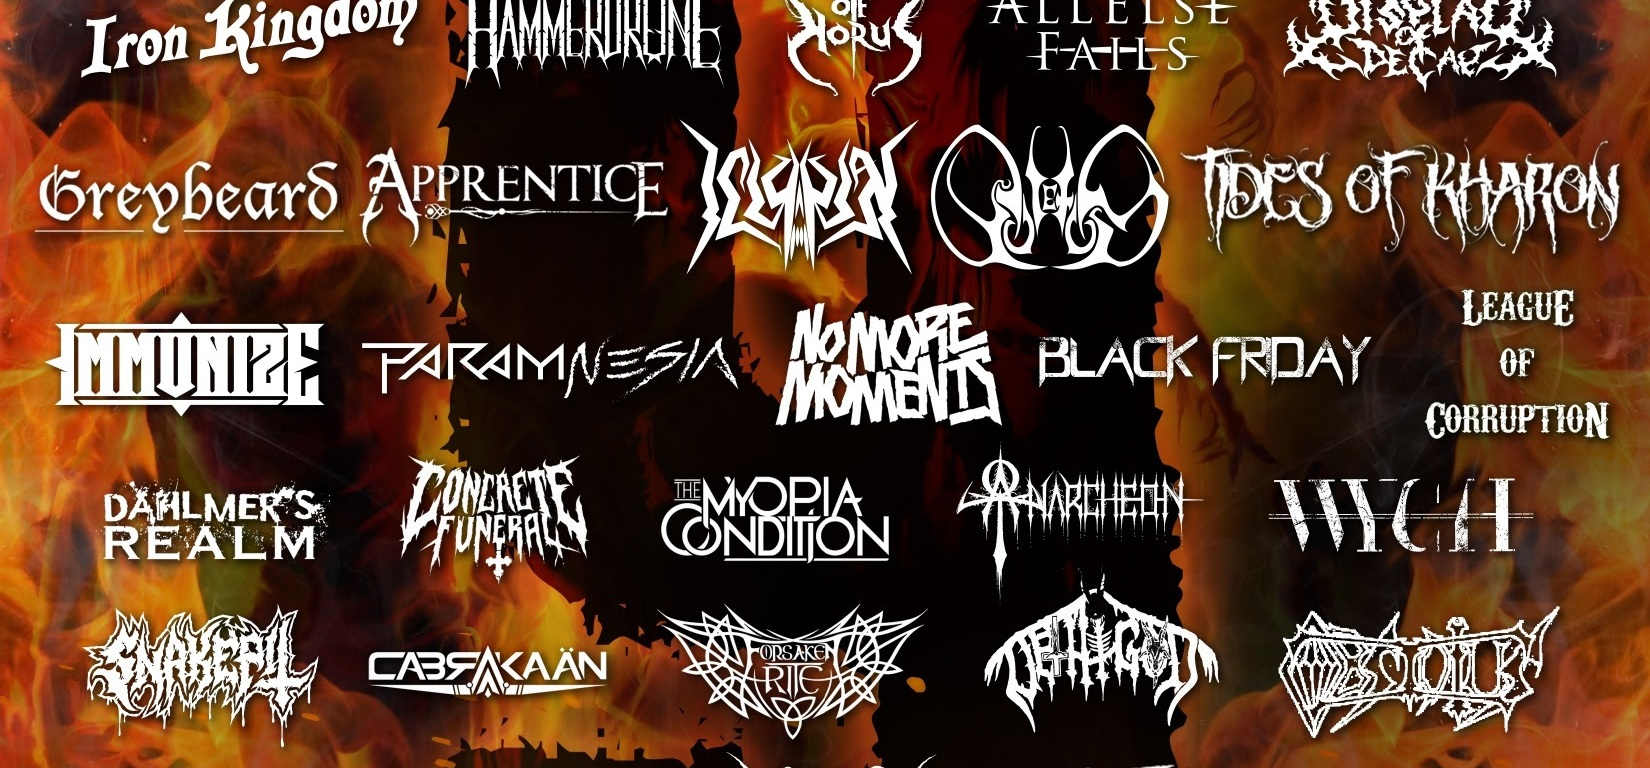 Canadian MetalFest LOUD AS HELL Reveals 2021 Line Up For Its Return July 30 - Aug 1